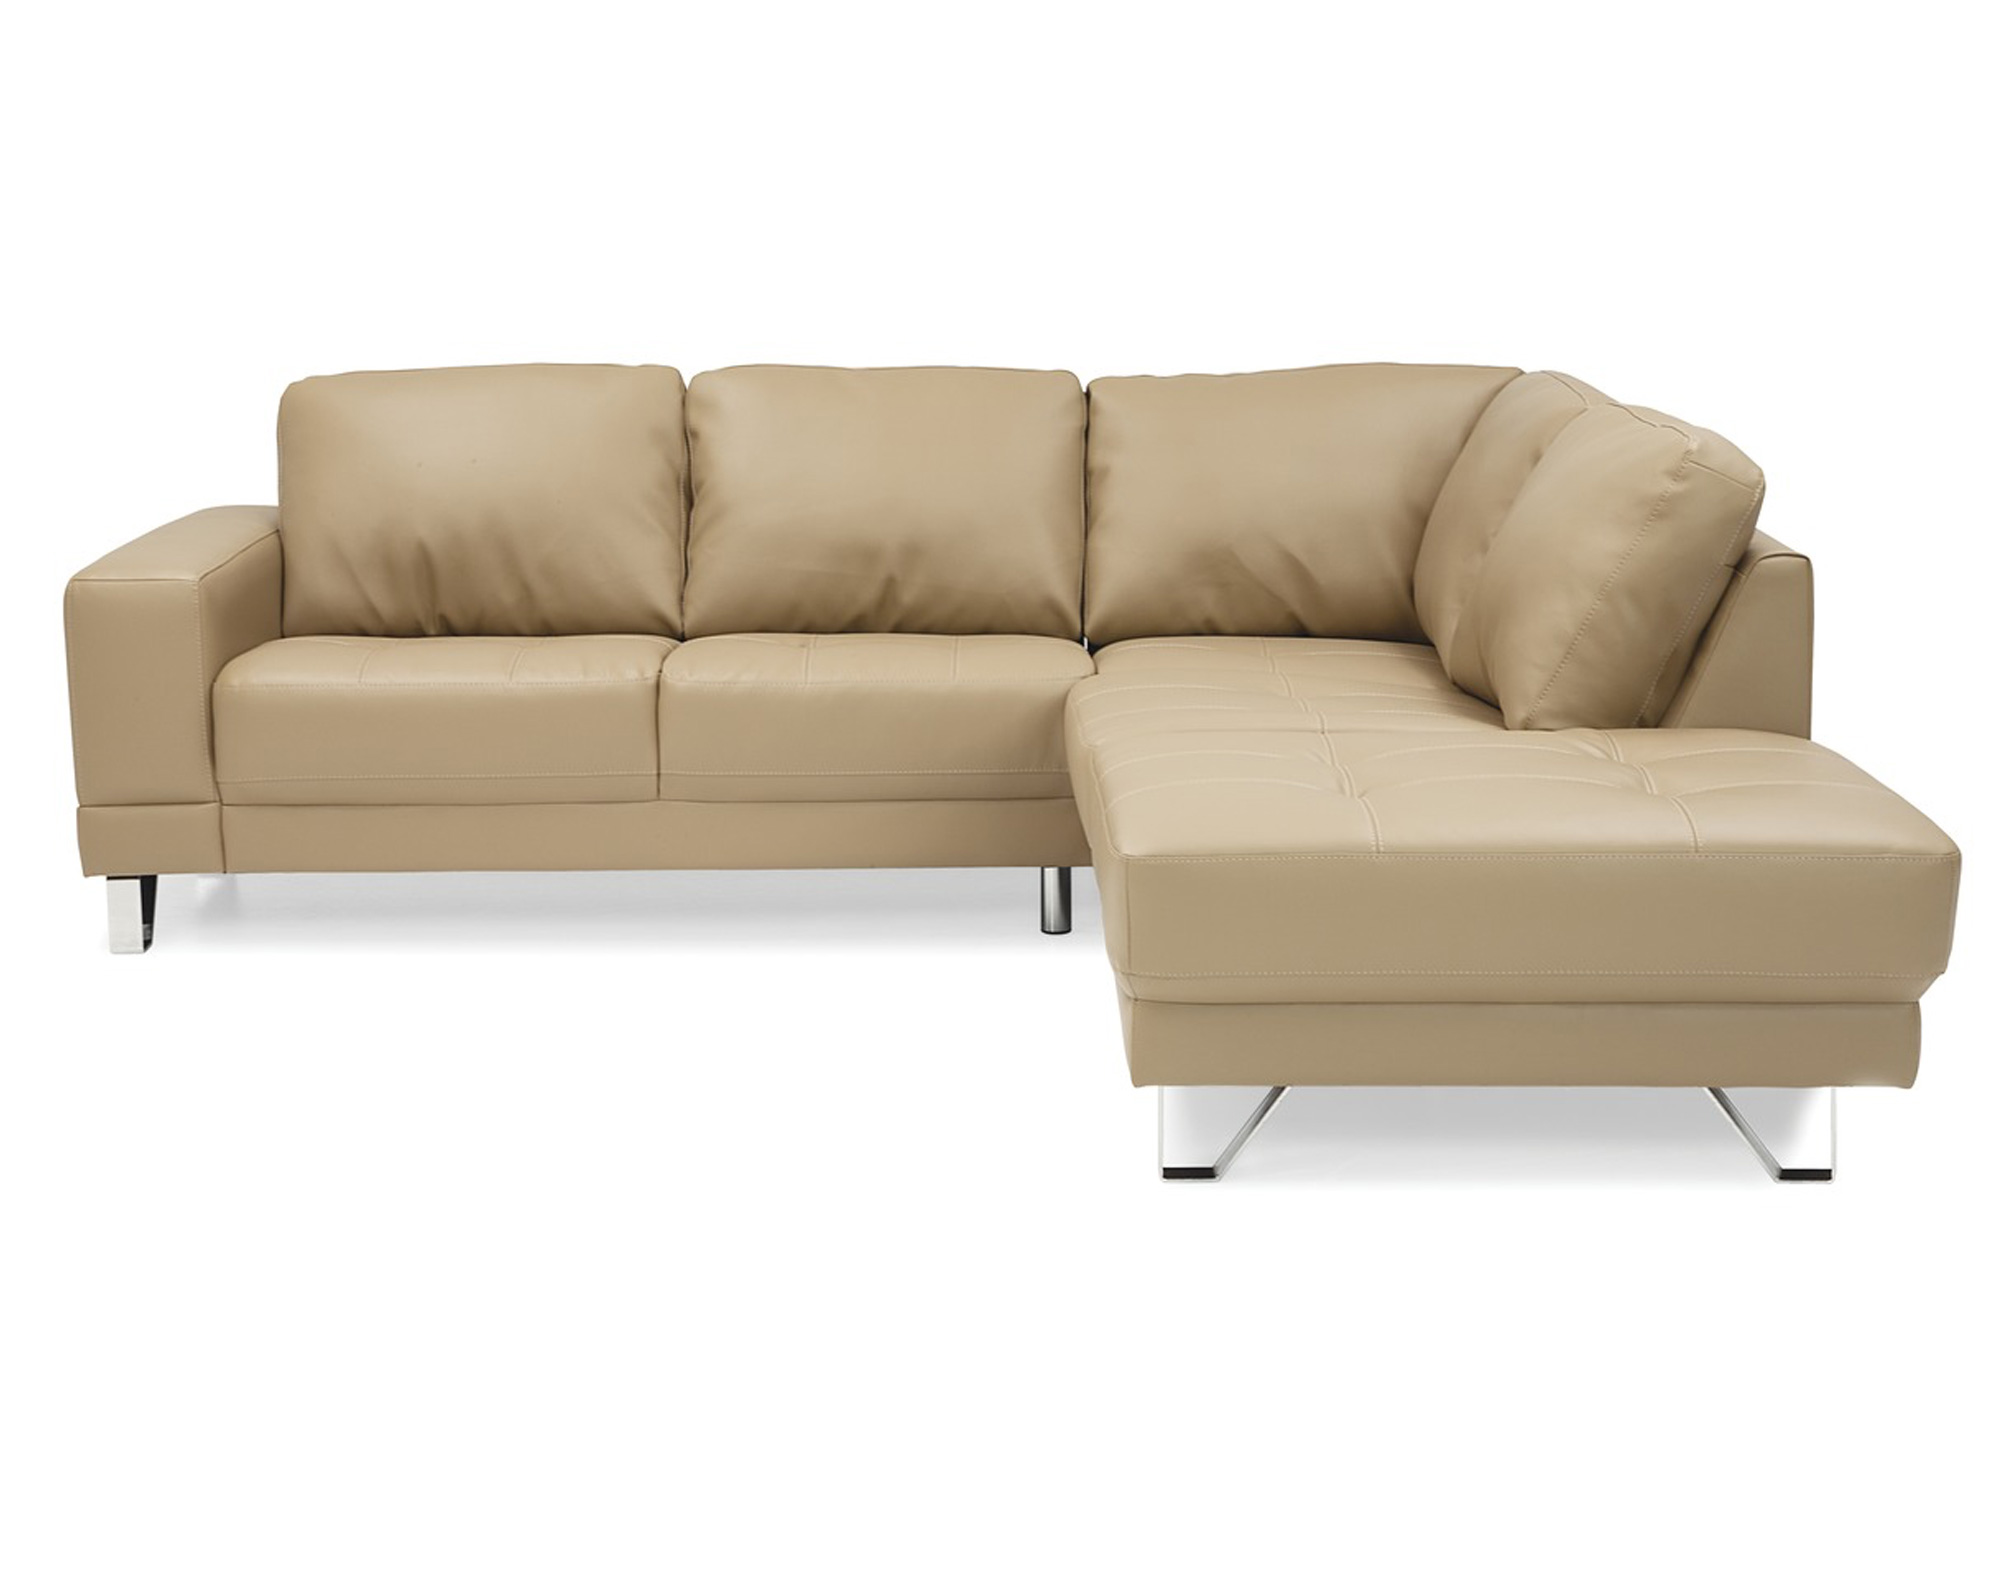 Seattle 77625 - 70625 Sectional- 350 Fabrics | Sofas and ...